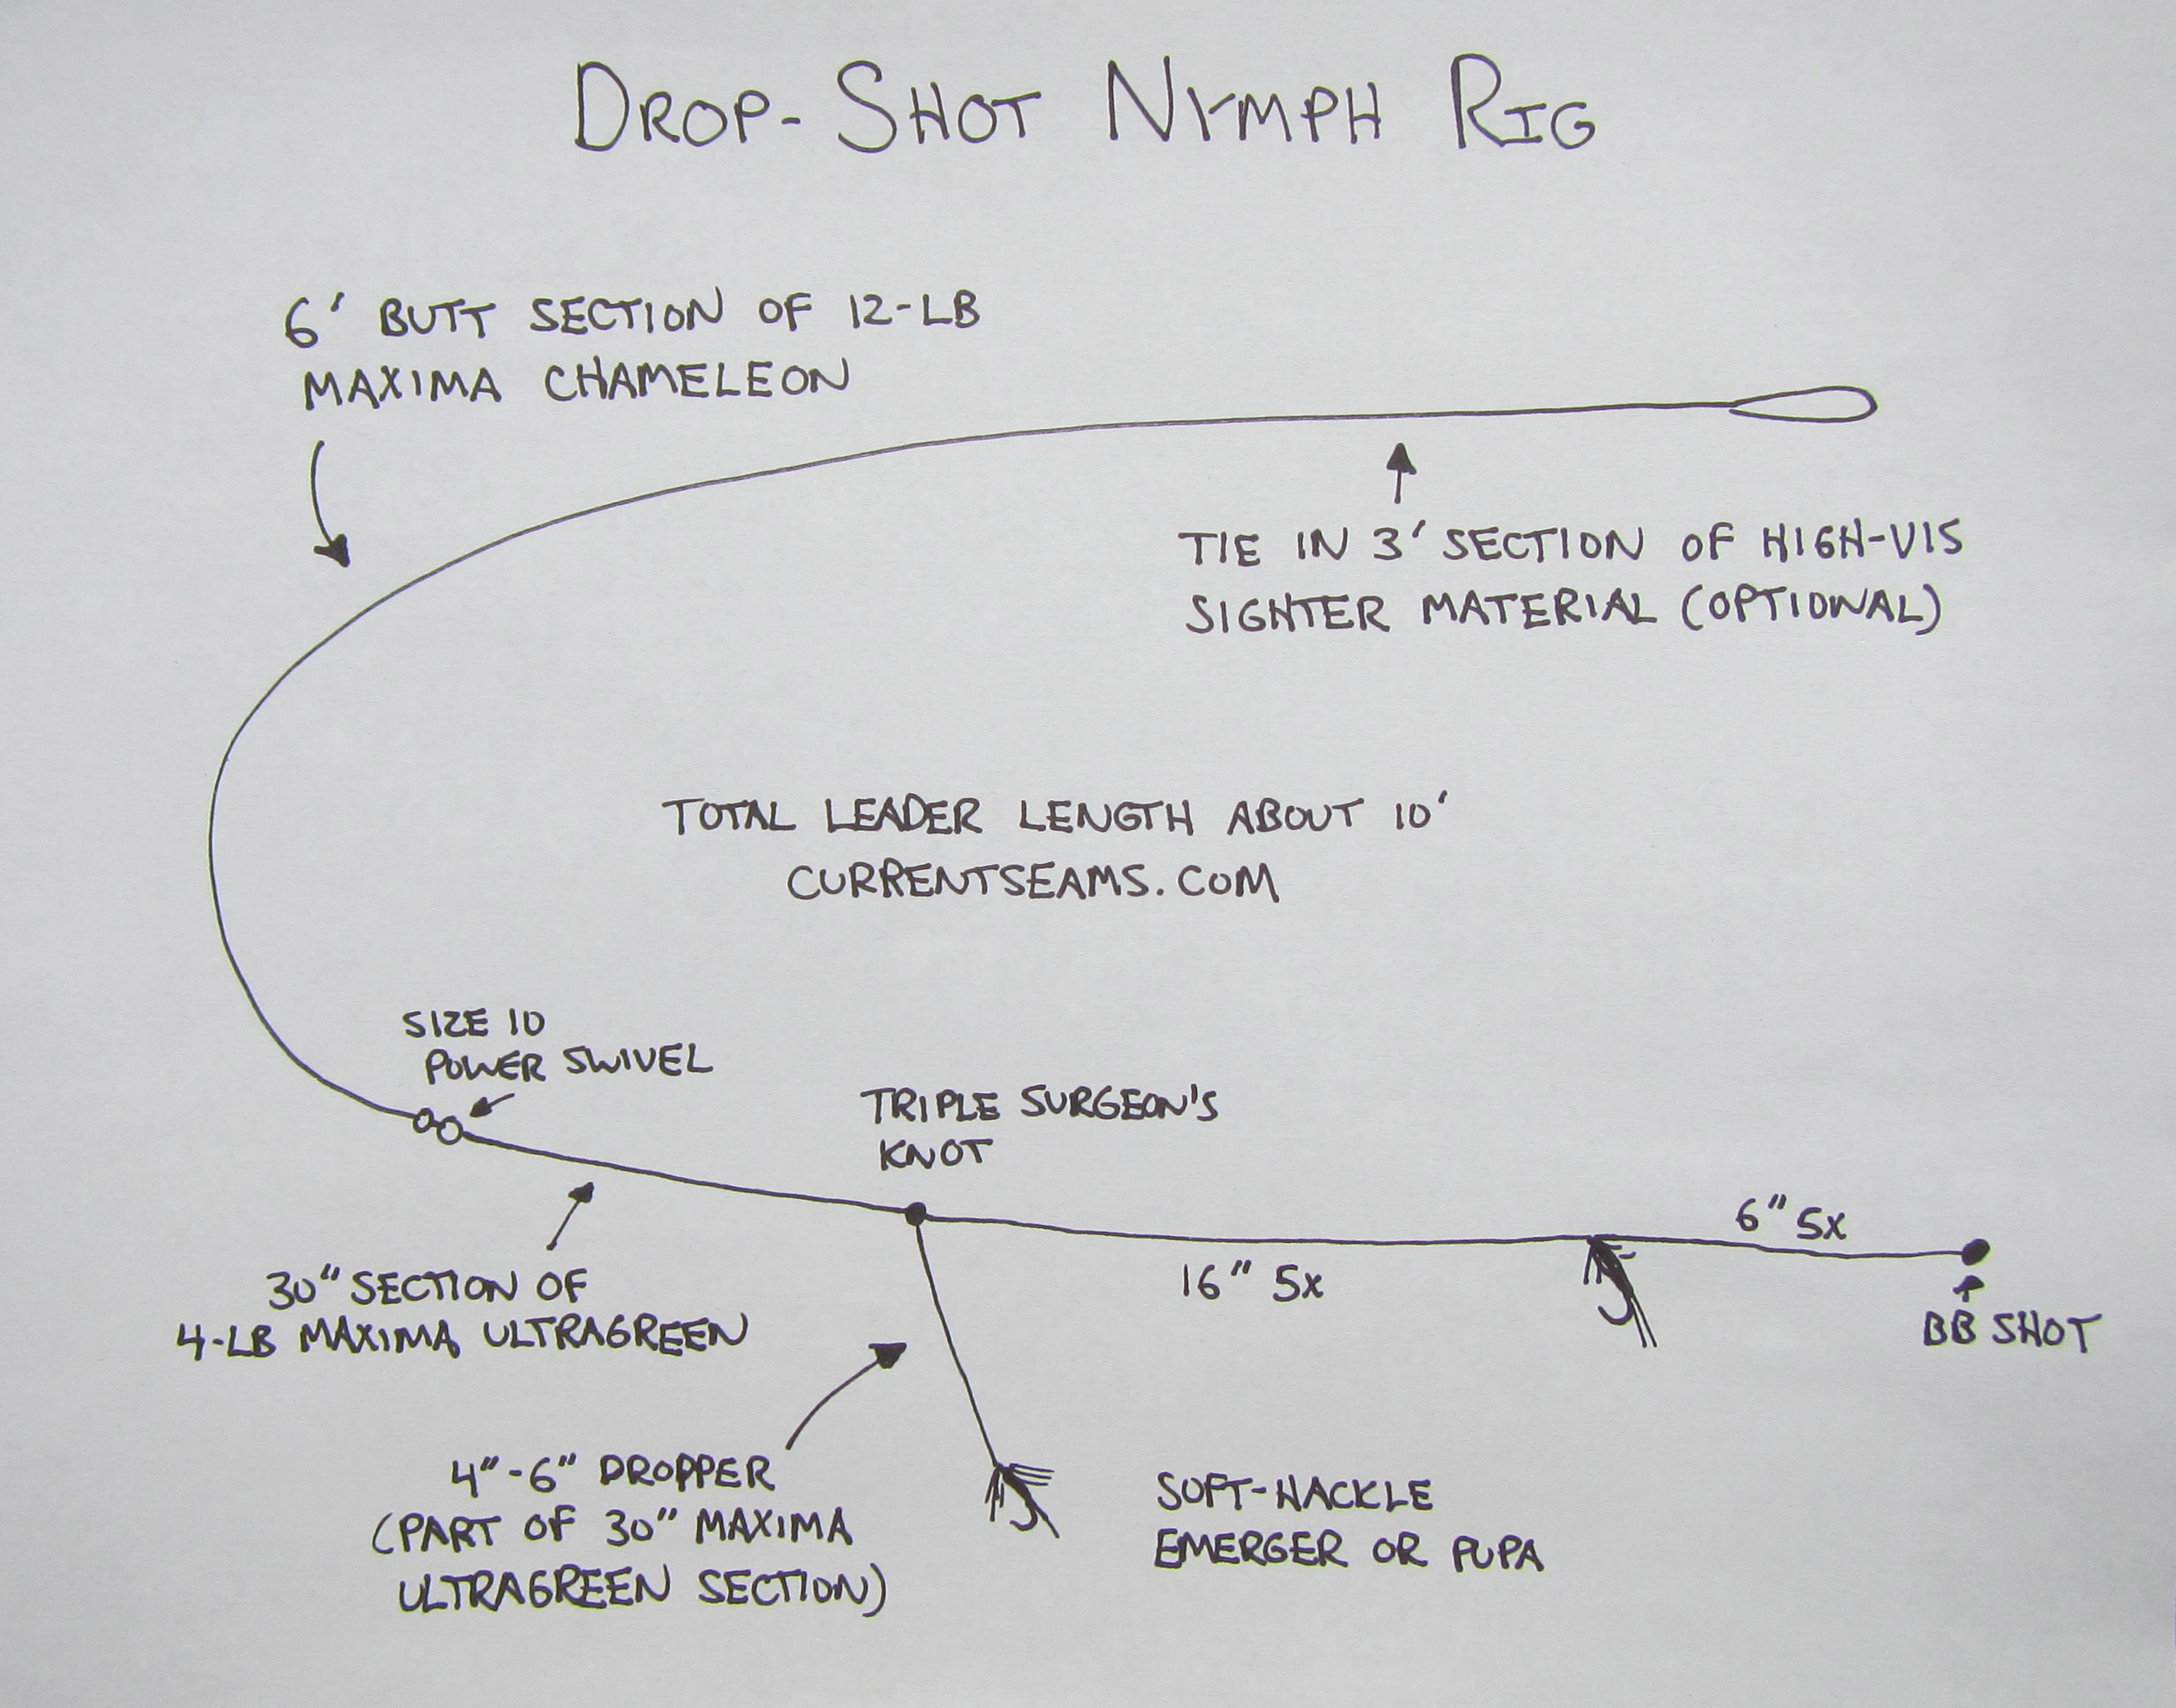 A Drop Shot Tandem Nymph Rig Currentseams Tying Tie Diagram